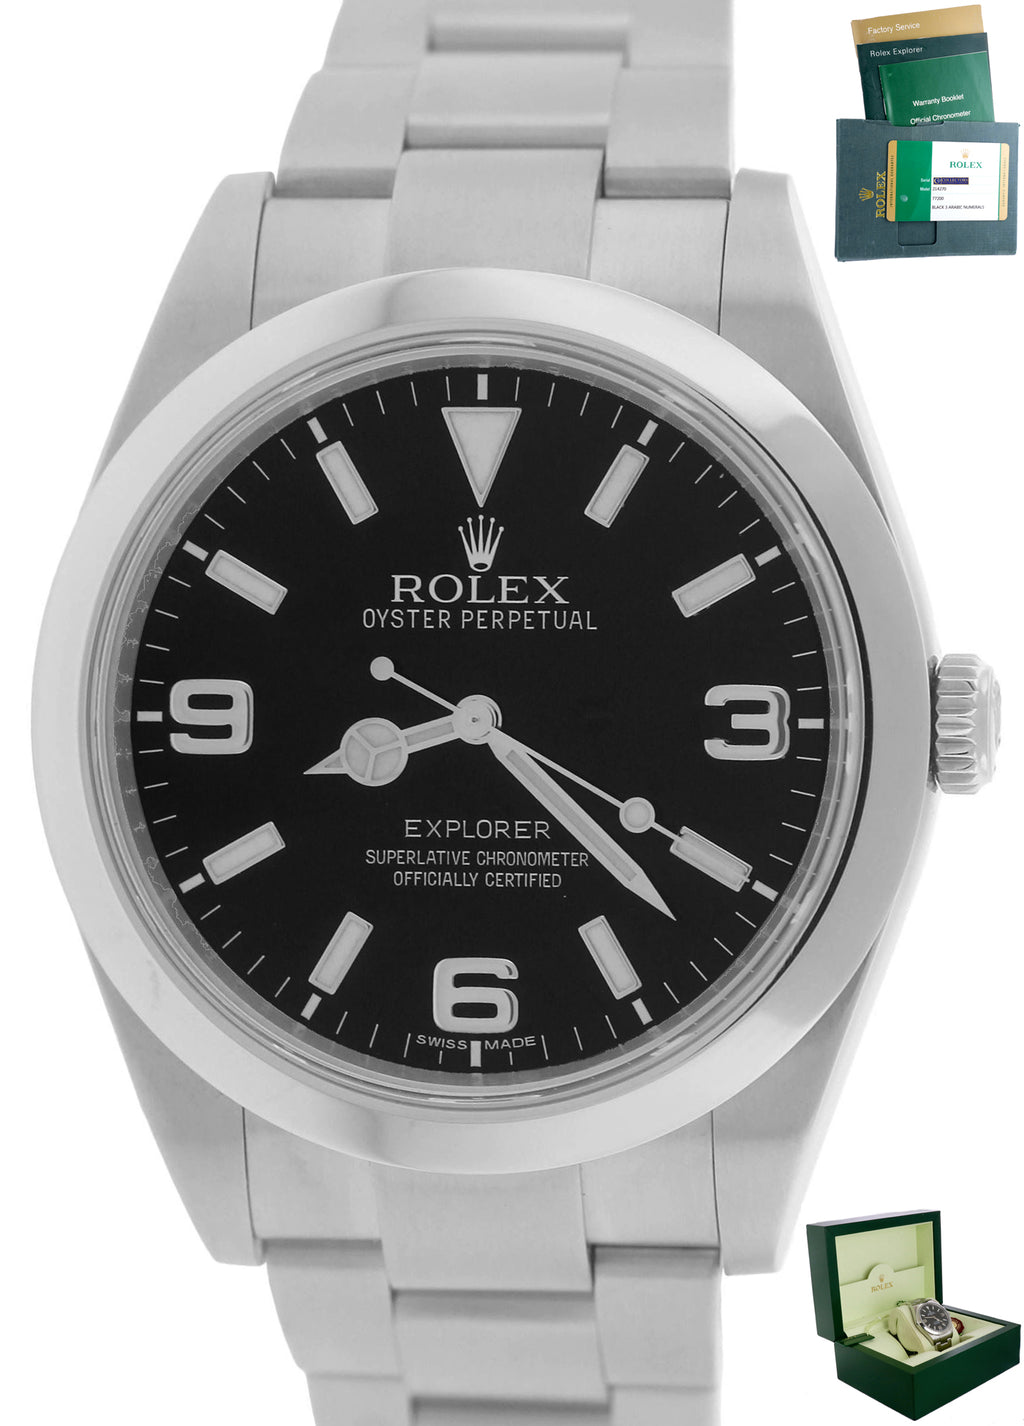 2014 Mint Men's Rolex Explorer I Black 39mm 214270 Stainless Steel Oyster Watch